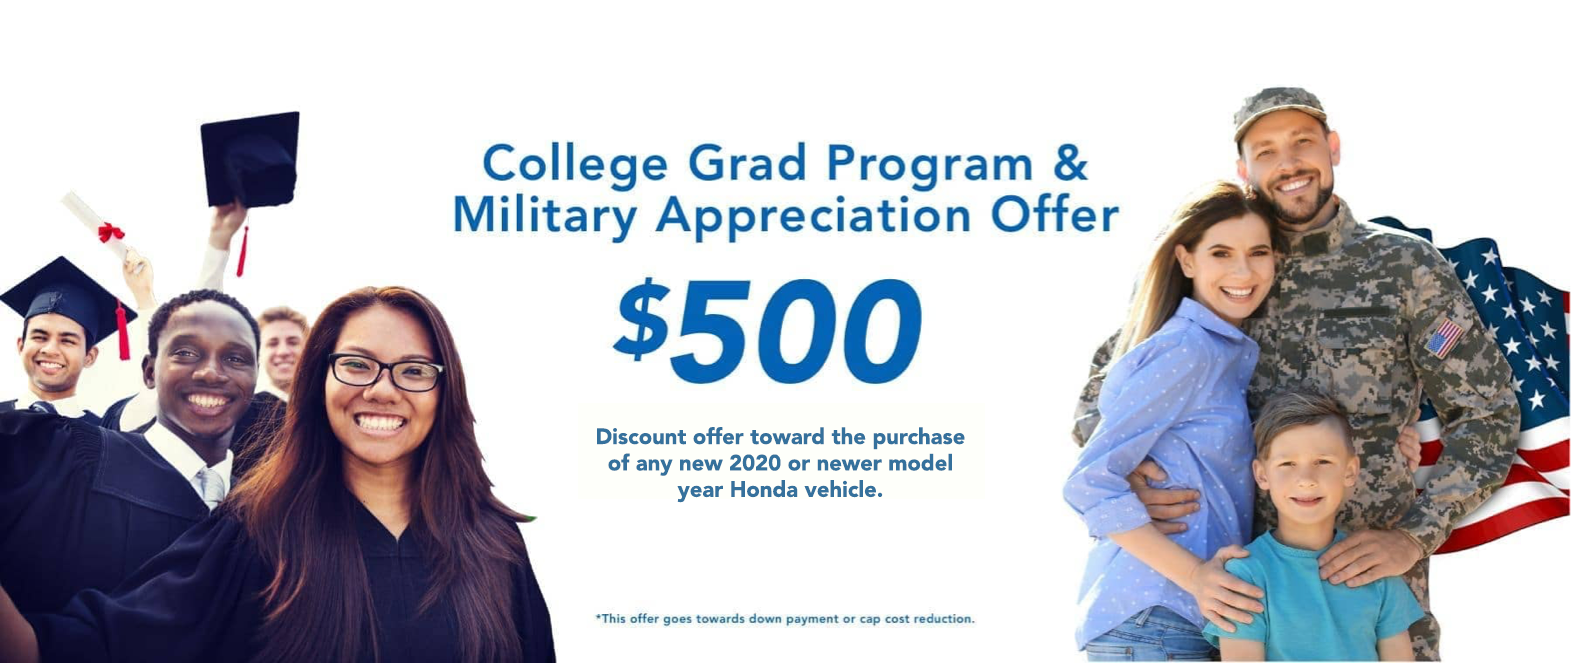 college:miltary offer